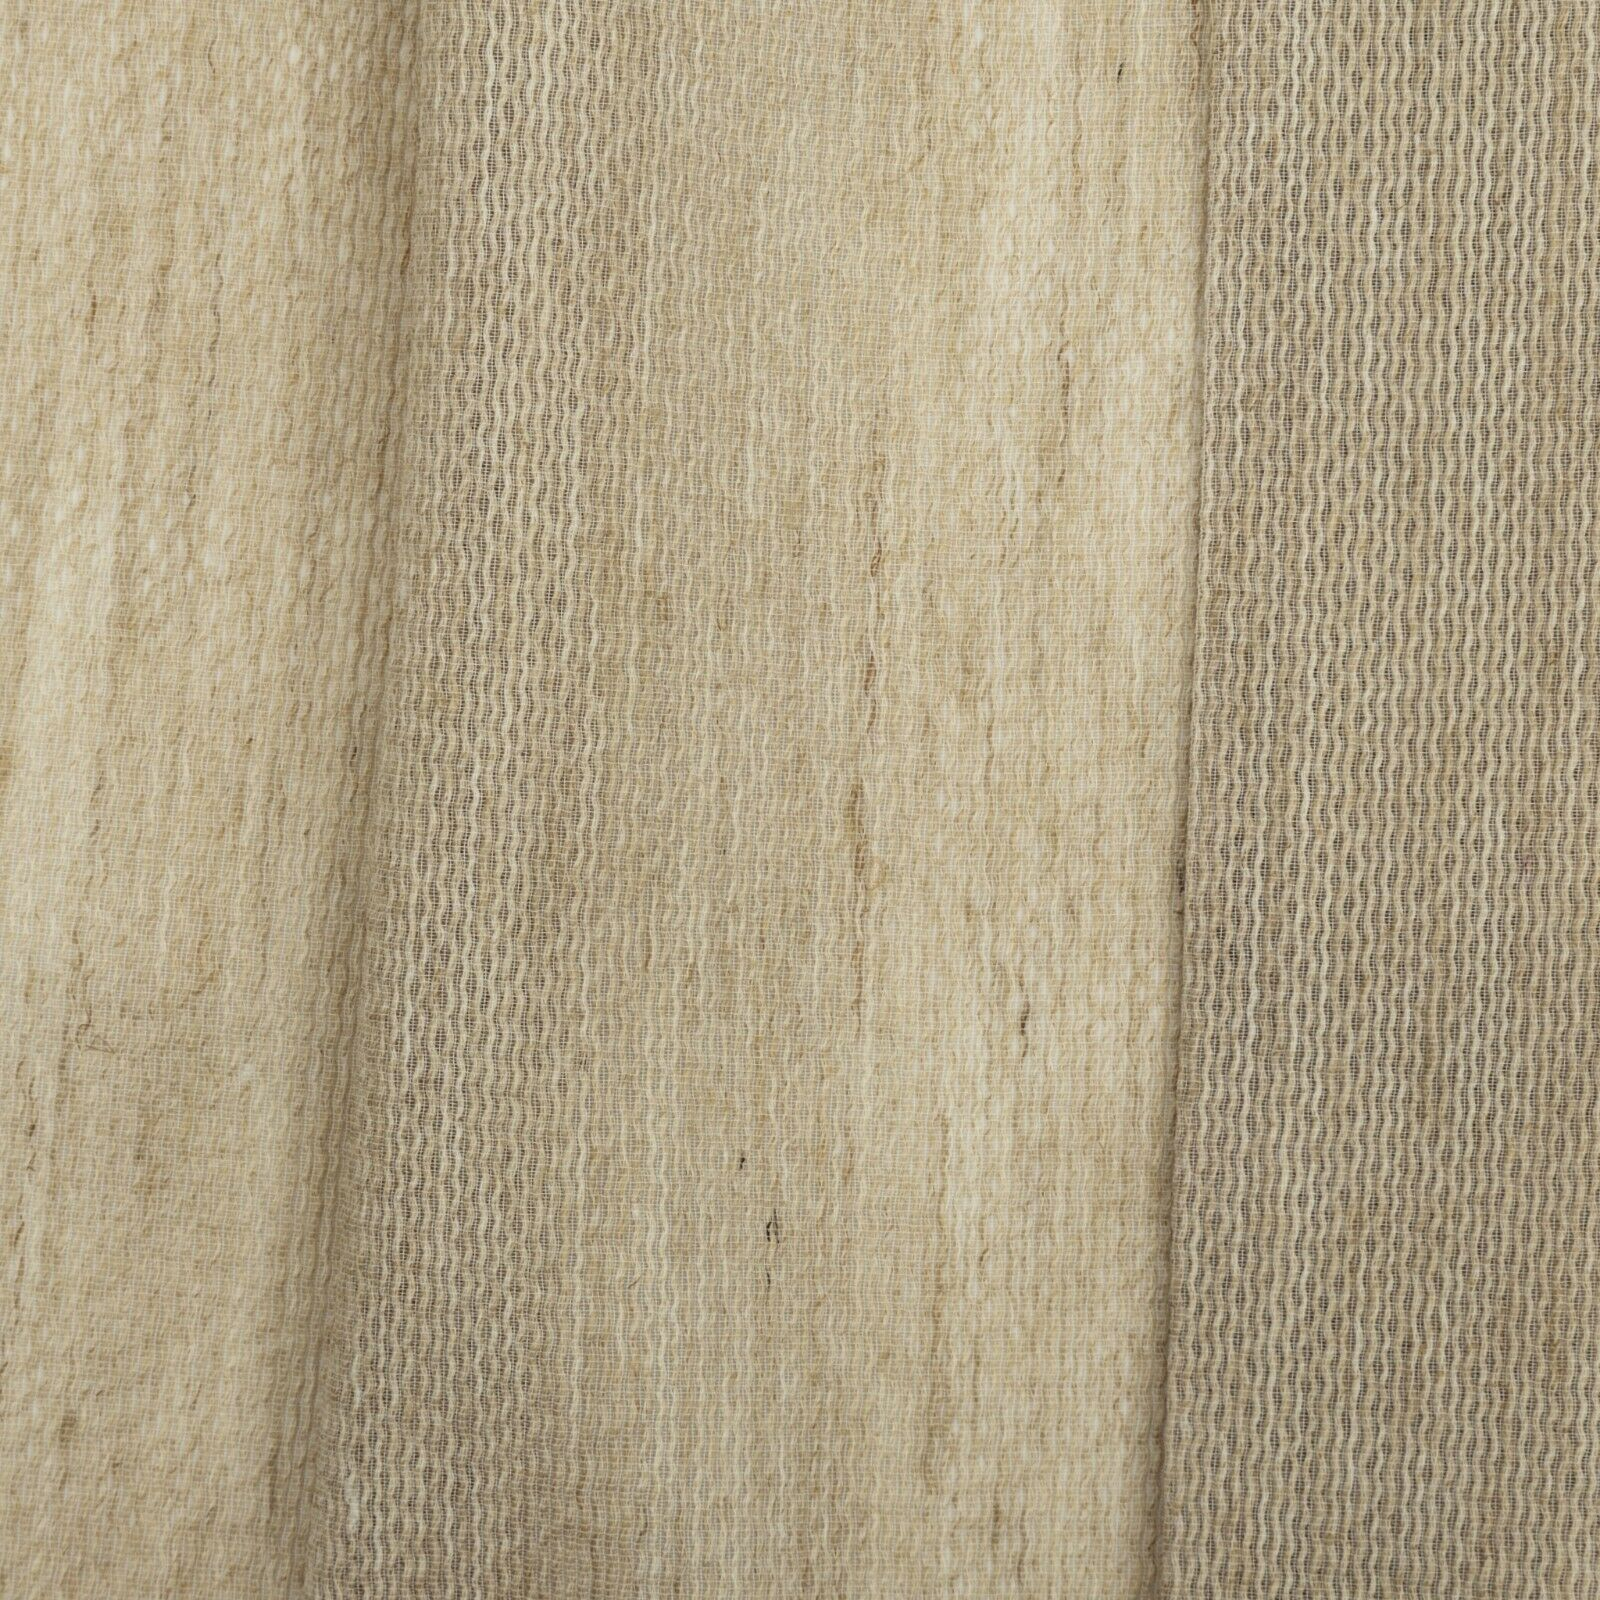 Natural Beige Textured Linen Striped Voile Sheer Curtain